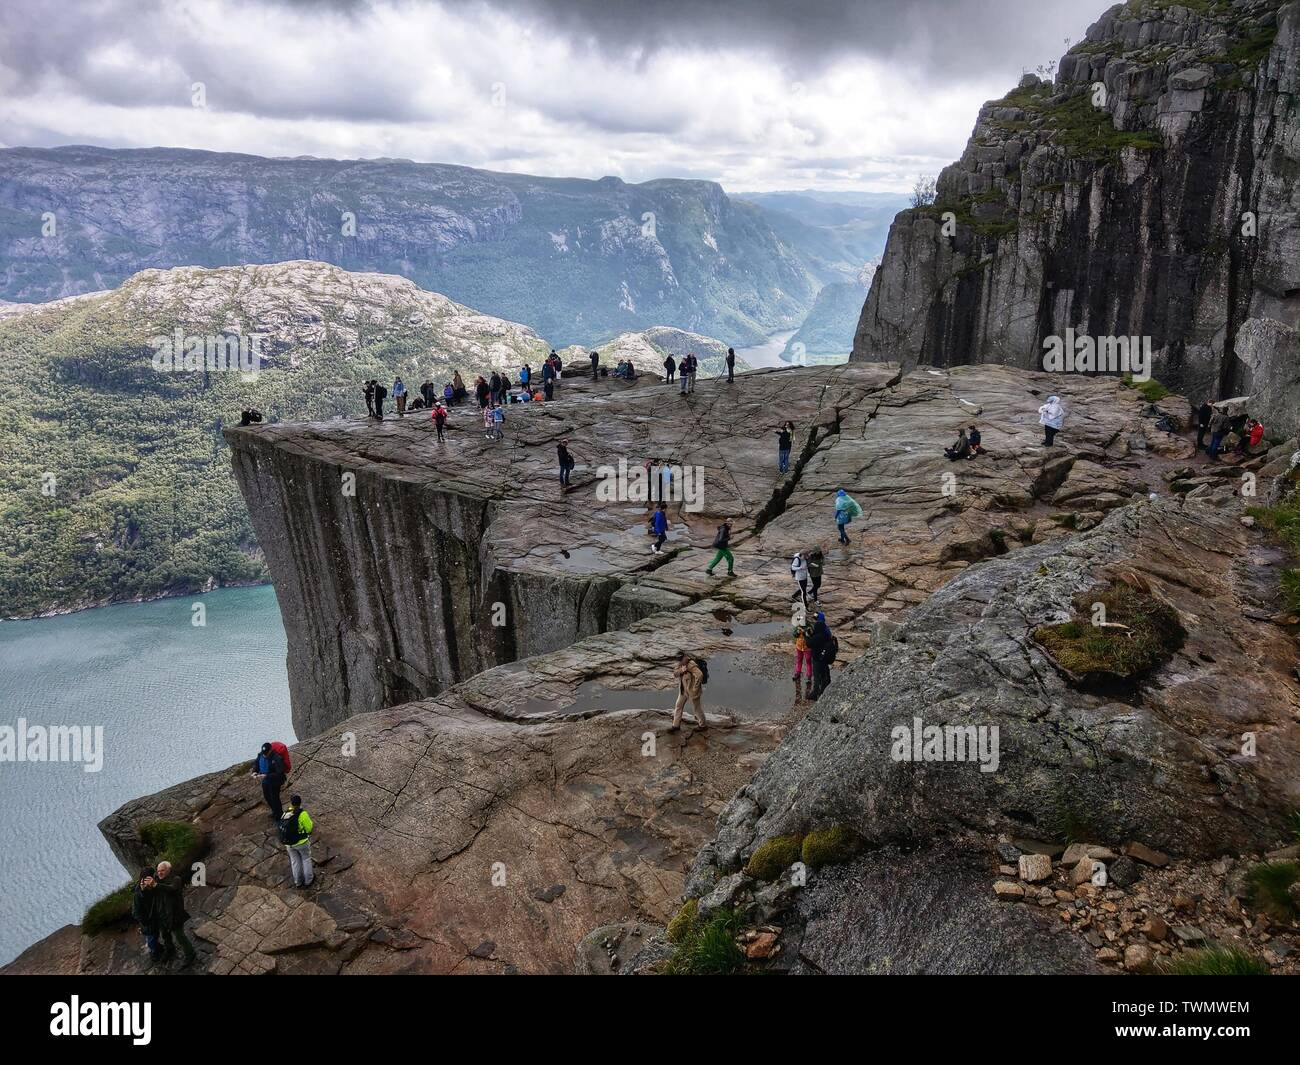 Preikestolen, Norway. 21st June, 2019. Norway's famed Preikestolen (Pulpit Rock), which is one of the country's major tourist attractions, offering some seven kilometers of hiking to reach The Rock and return. Credit: Sachelle Babbar/ZUMA Wire/Alamy Live News - Stock Image